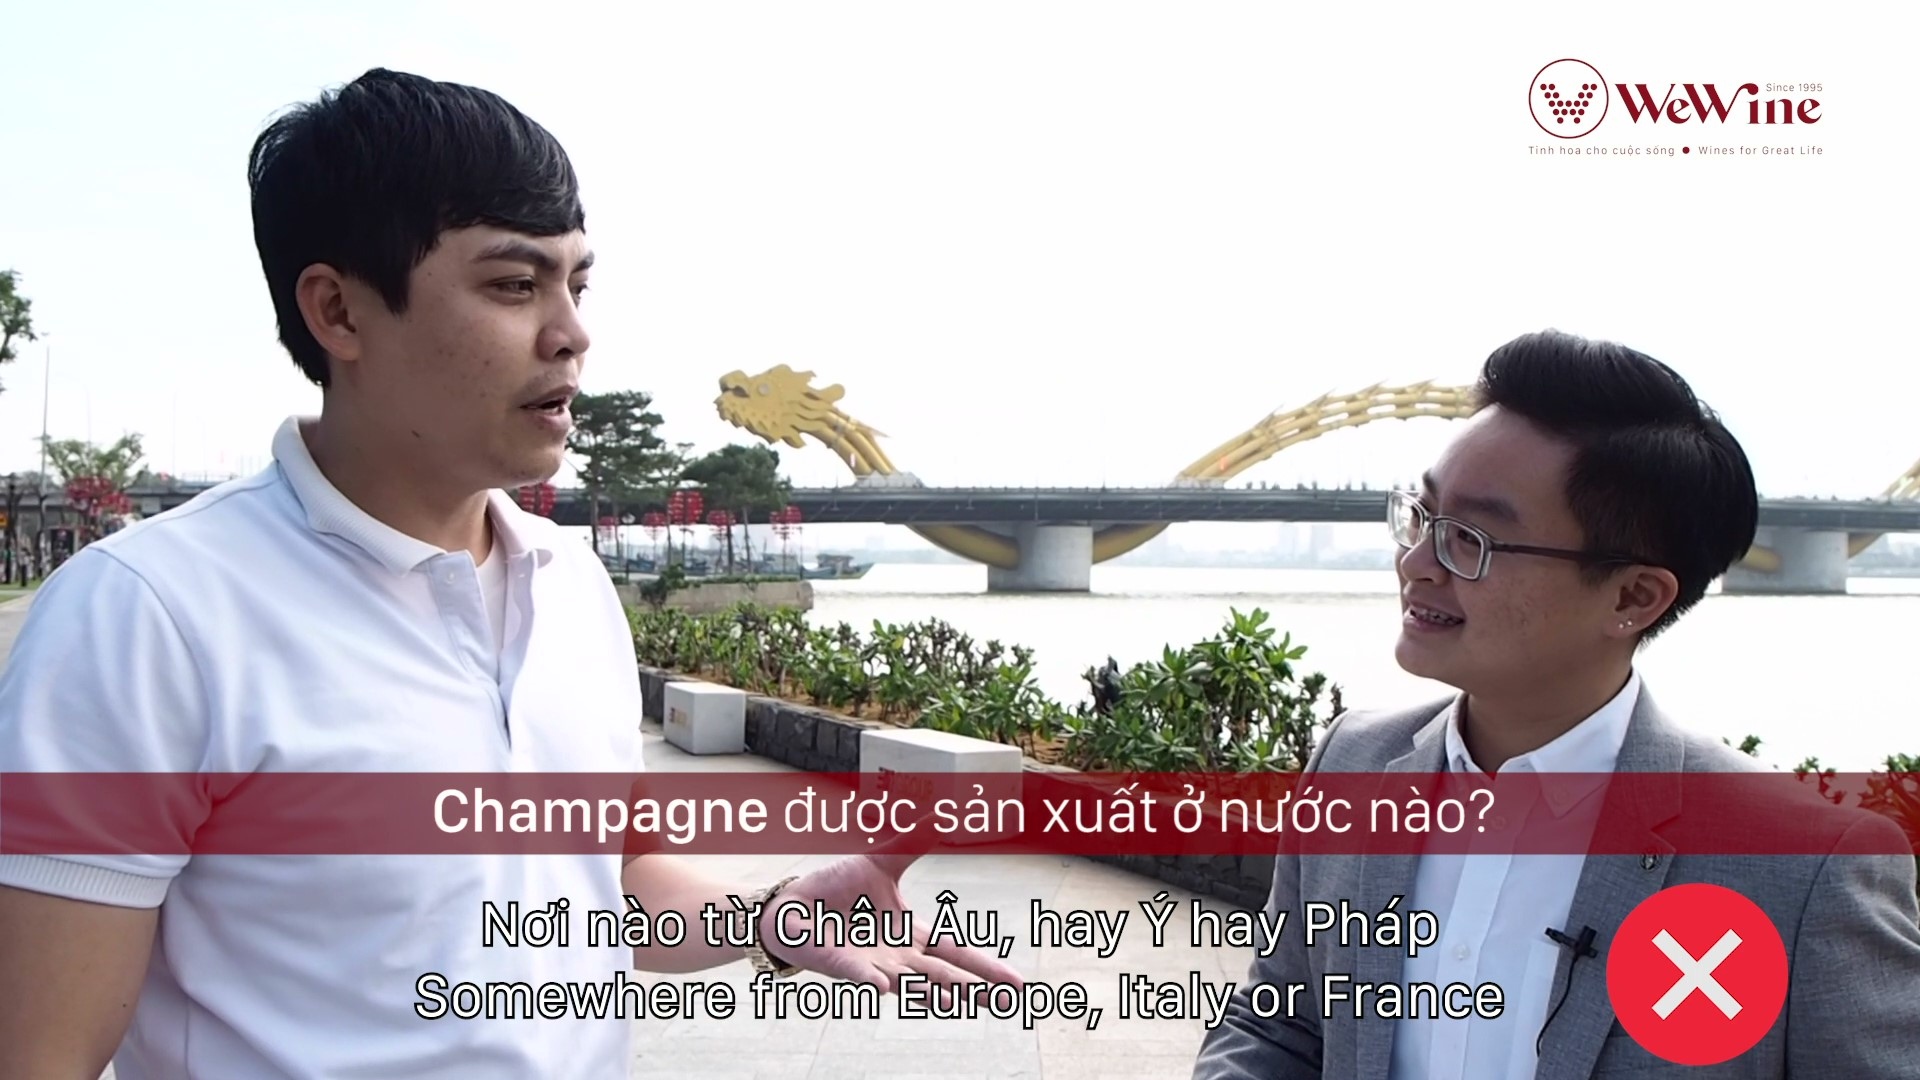 How well Danang people know about wine?